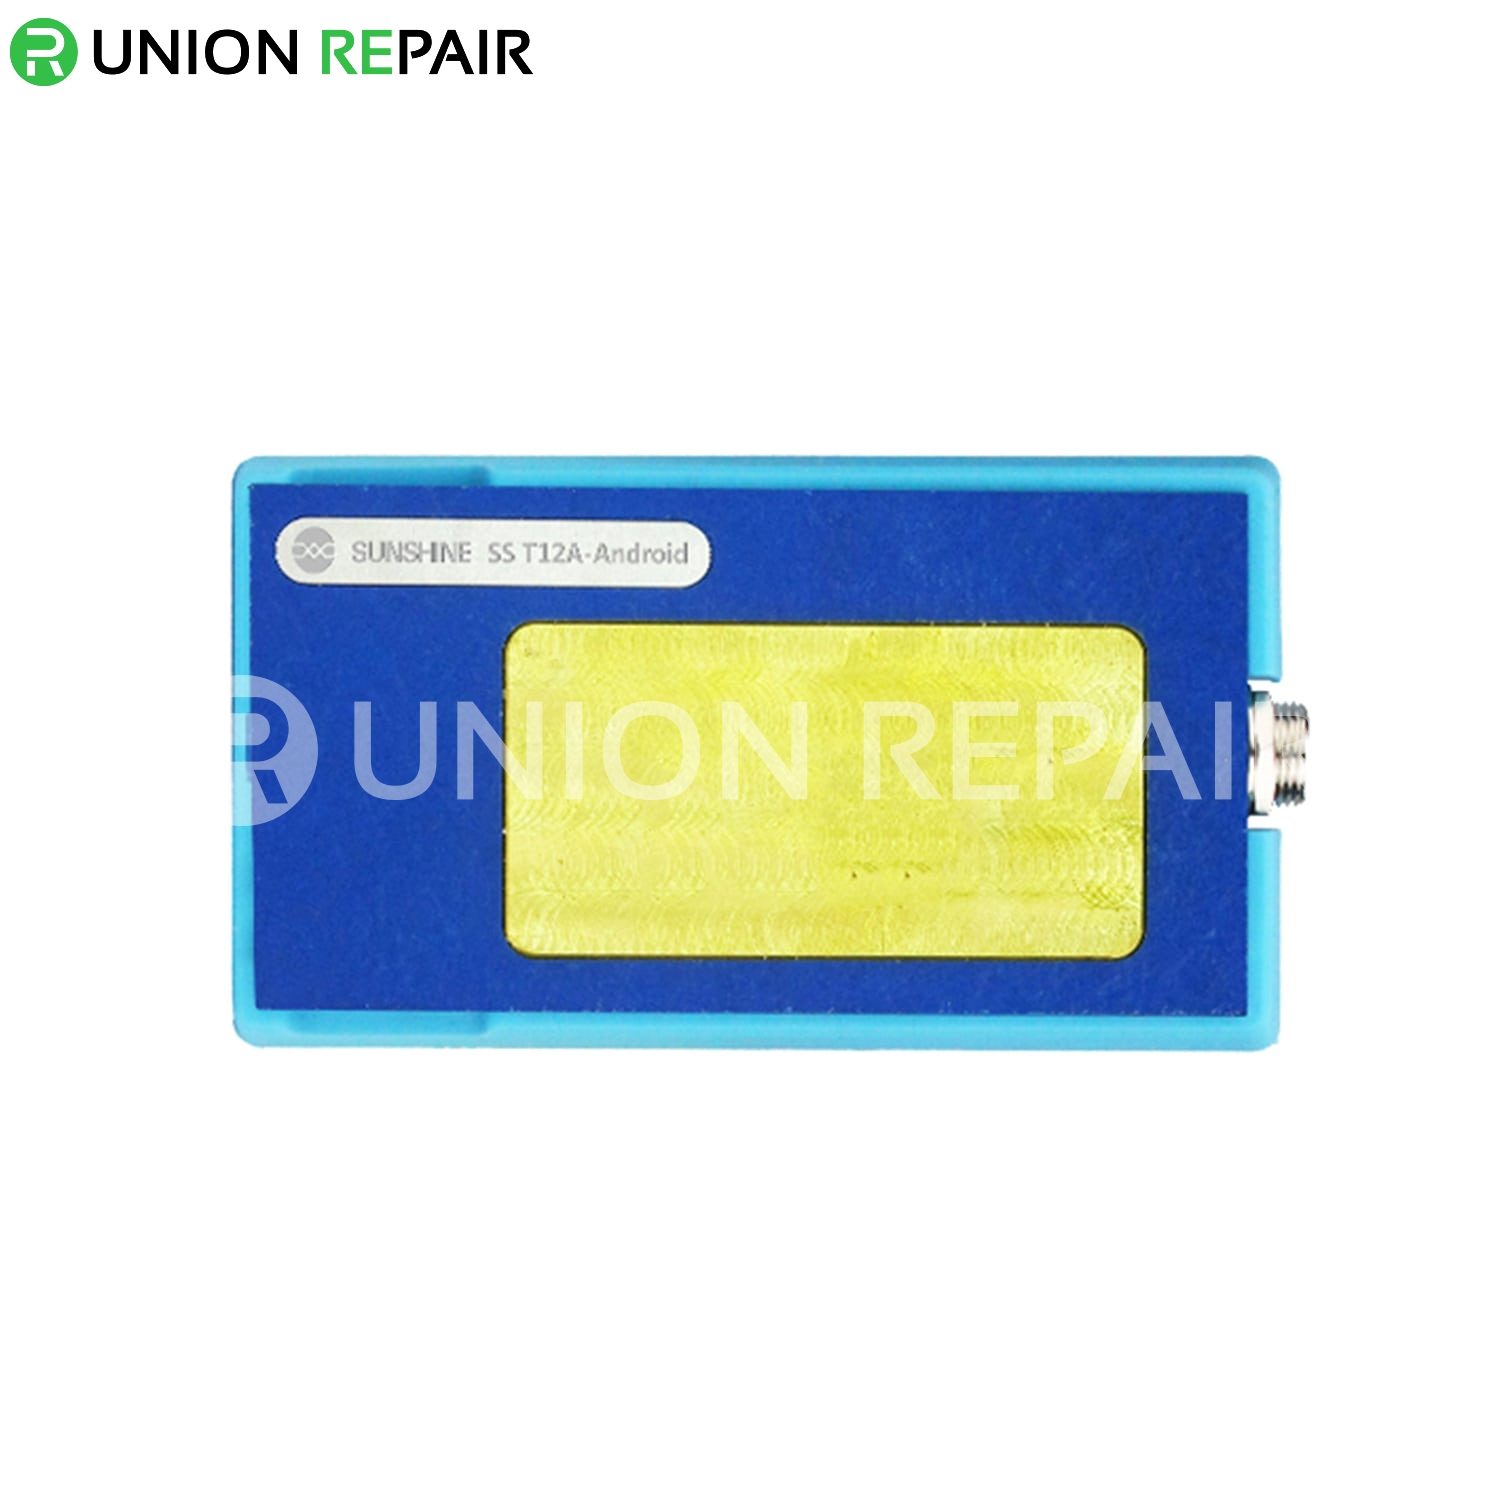 SS-T12A Mainboard Preheater for iPhone X/XS/XS Max, Condition: T12A-Android